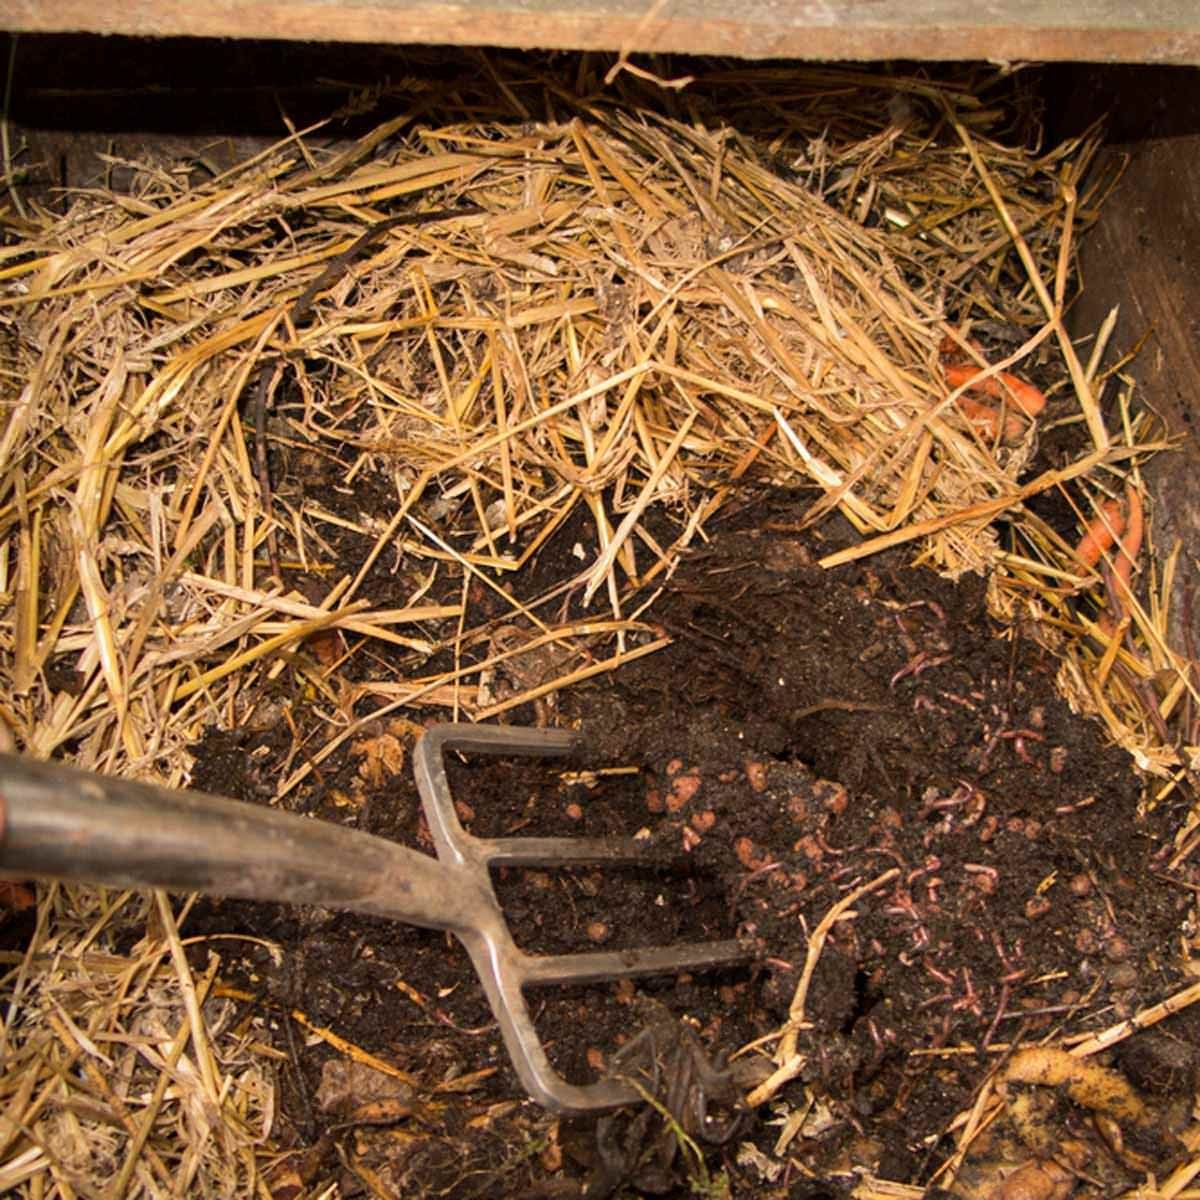 fh11_568408396 compost worms hay